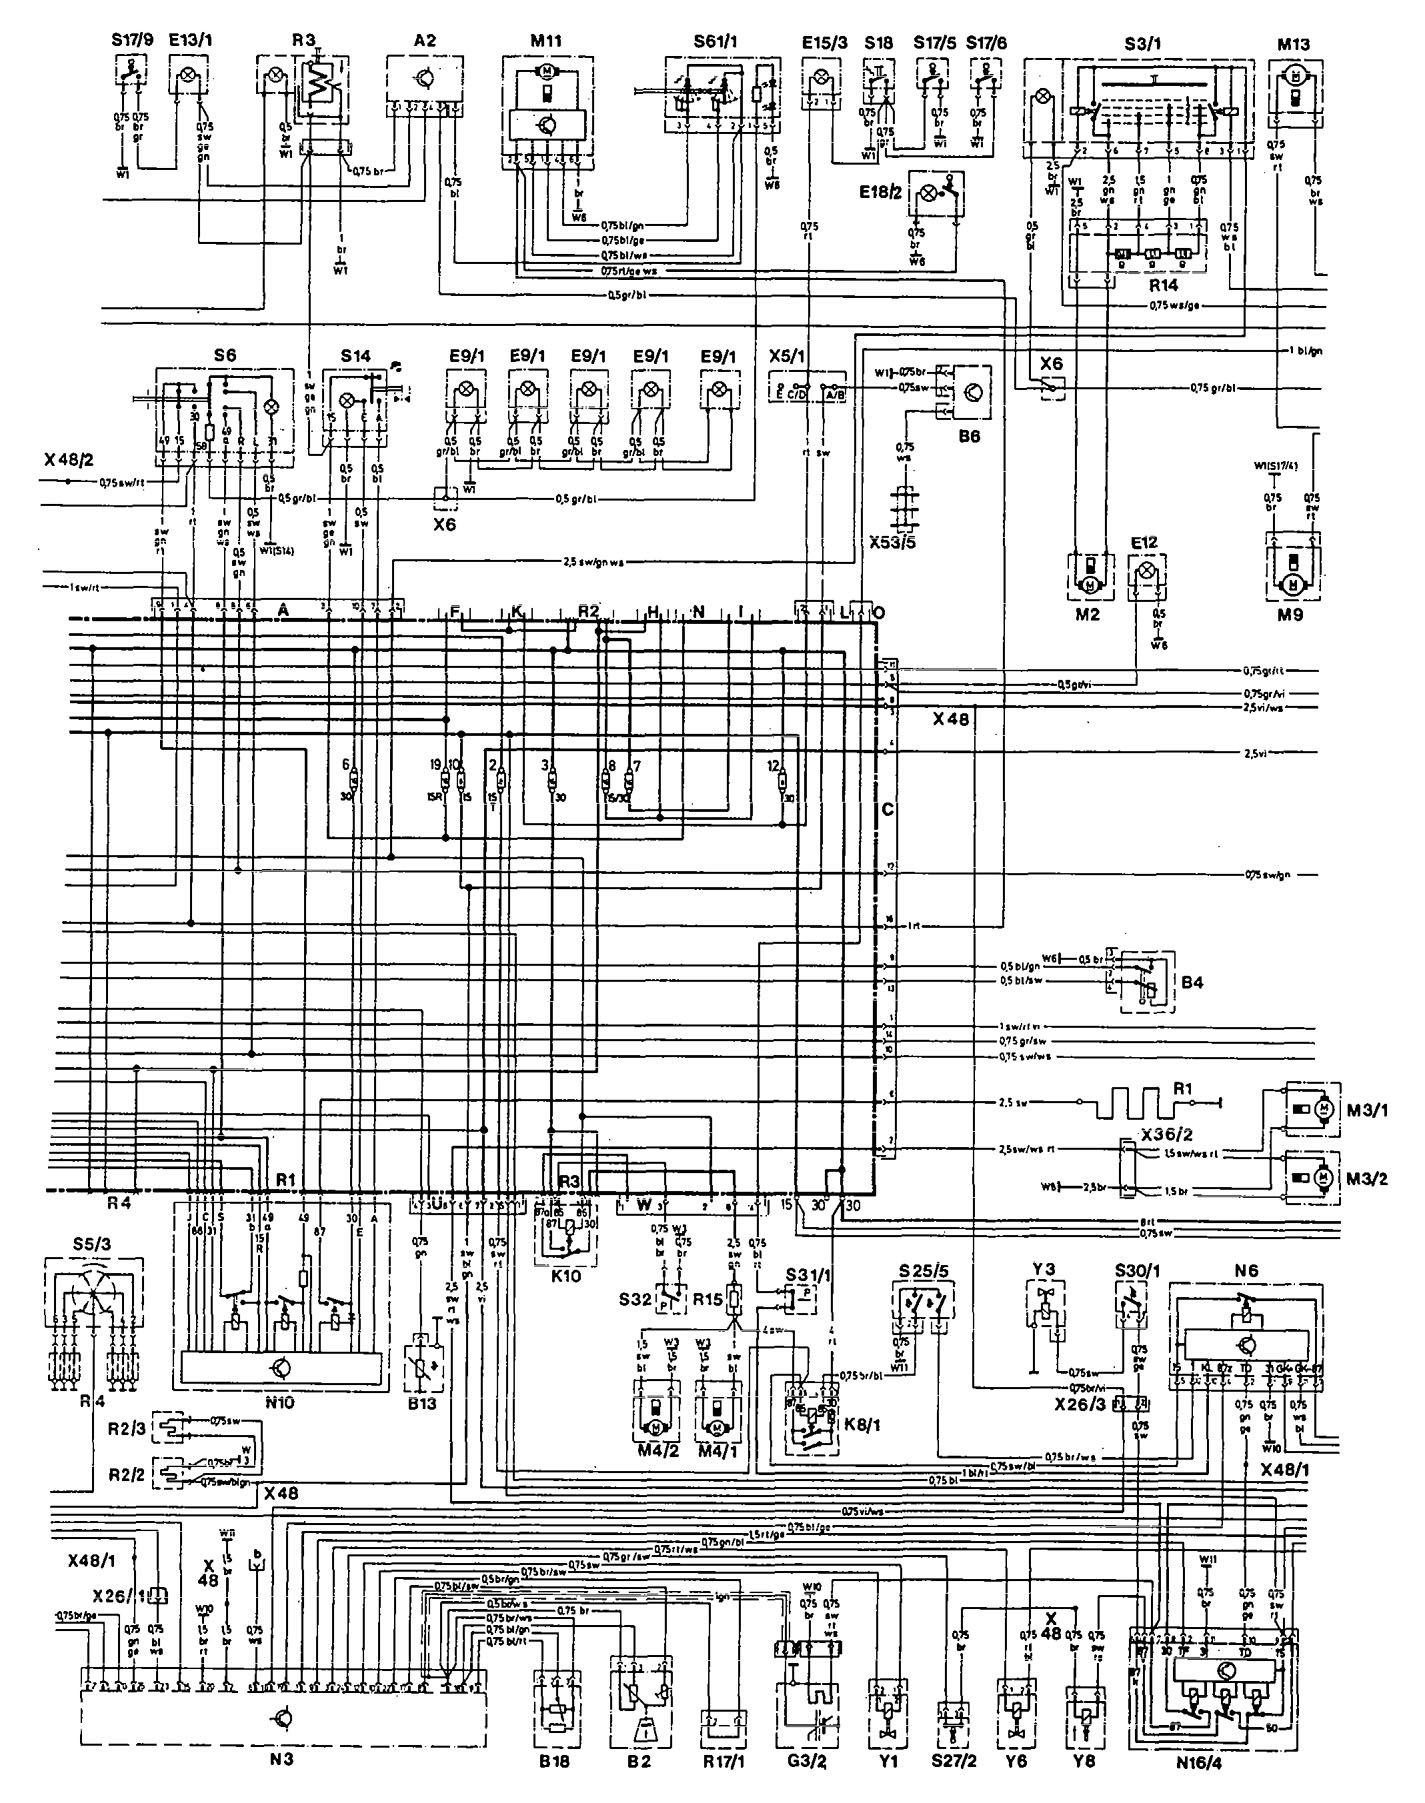 Mercedes Benz 190e 1993 Wiring Diagrams Starting Carknowledge Diagram